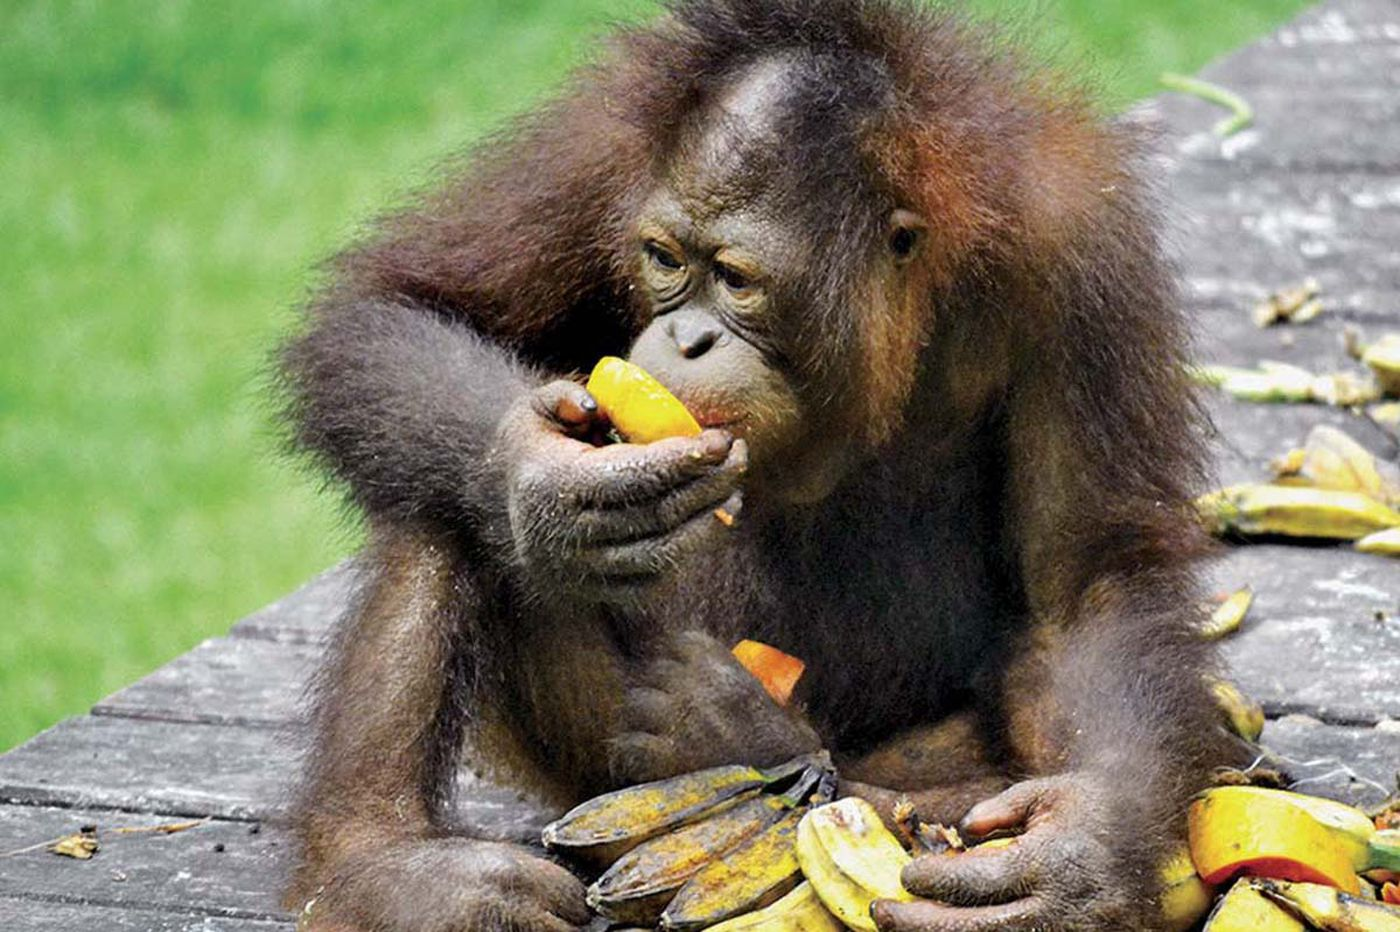 Borneo: Exotic orang utans, macaques - and a Philly LOVE sculpture